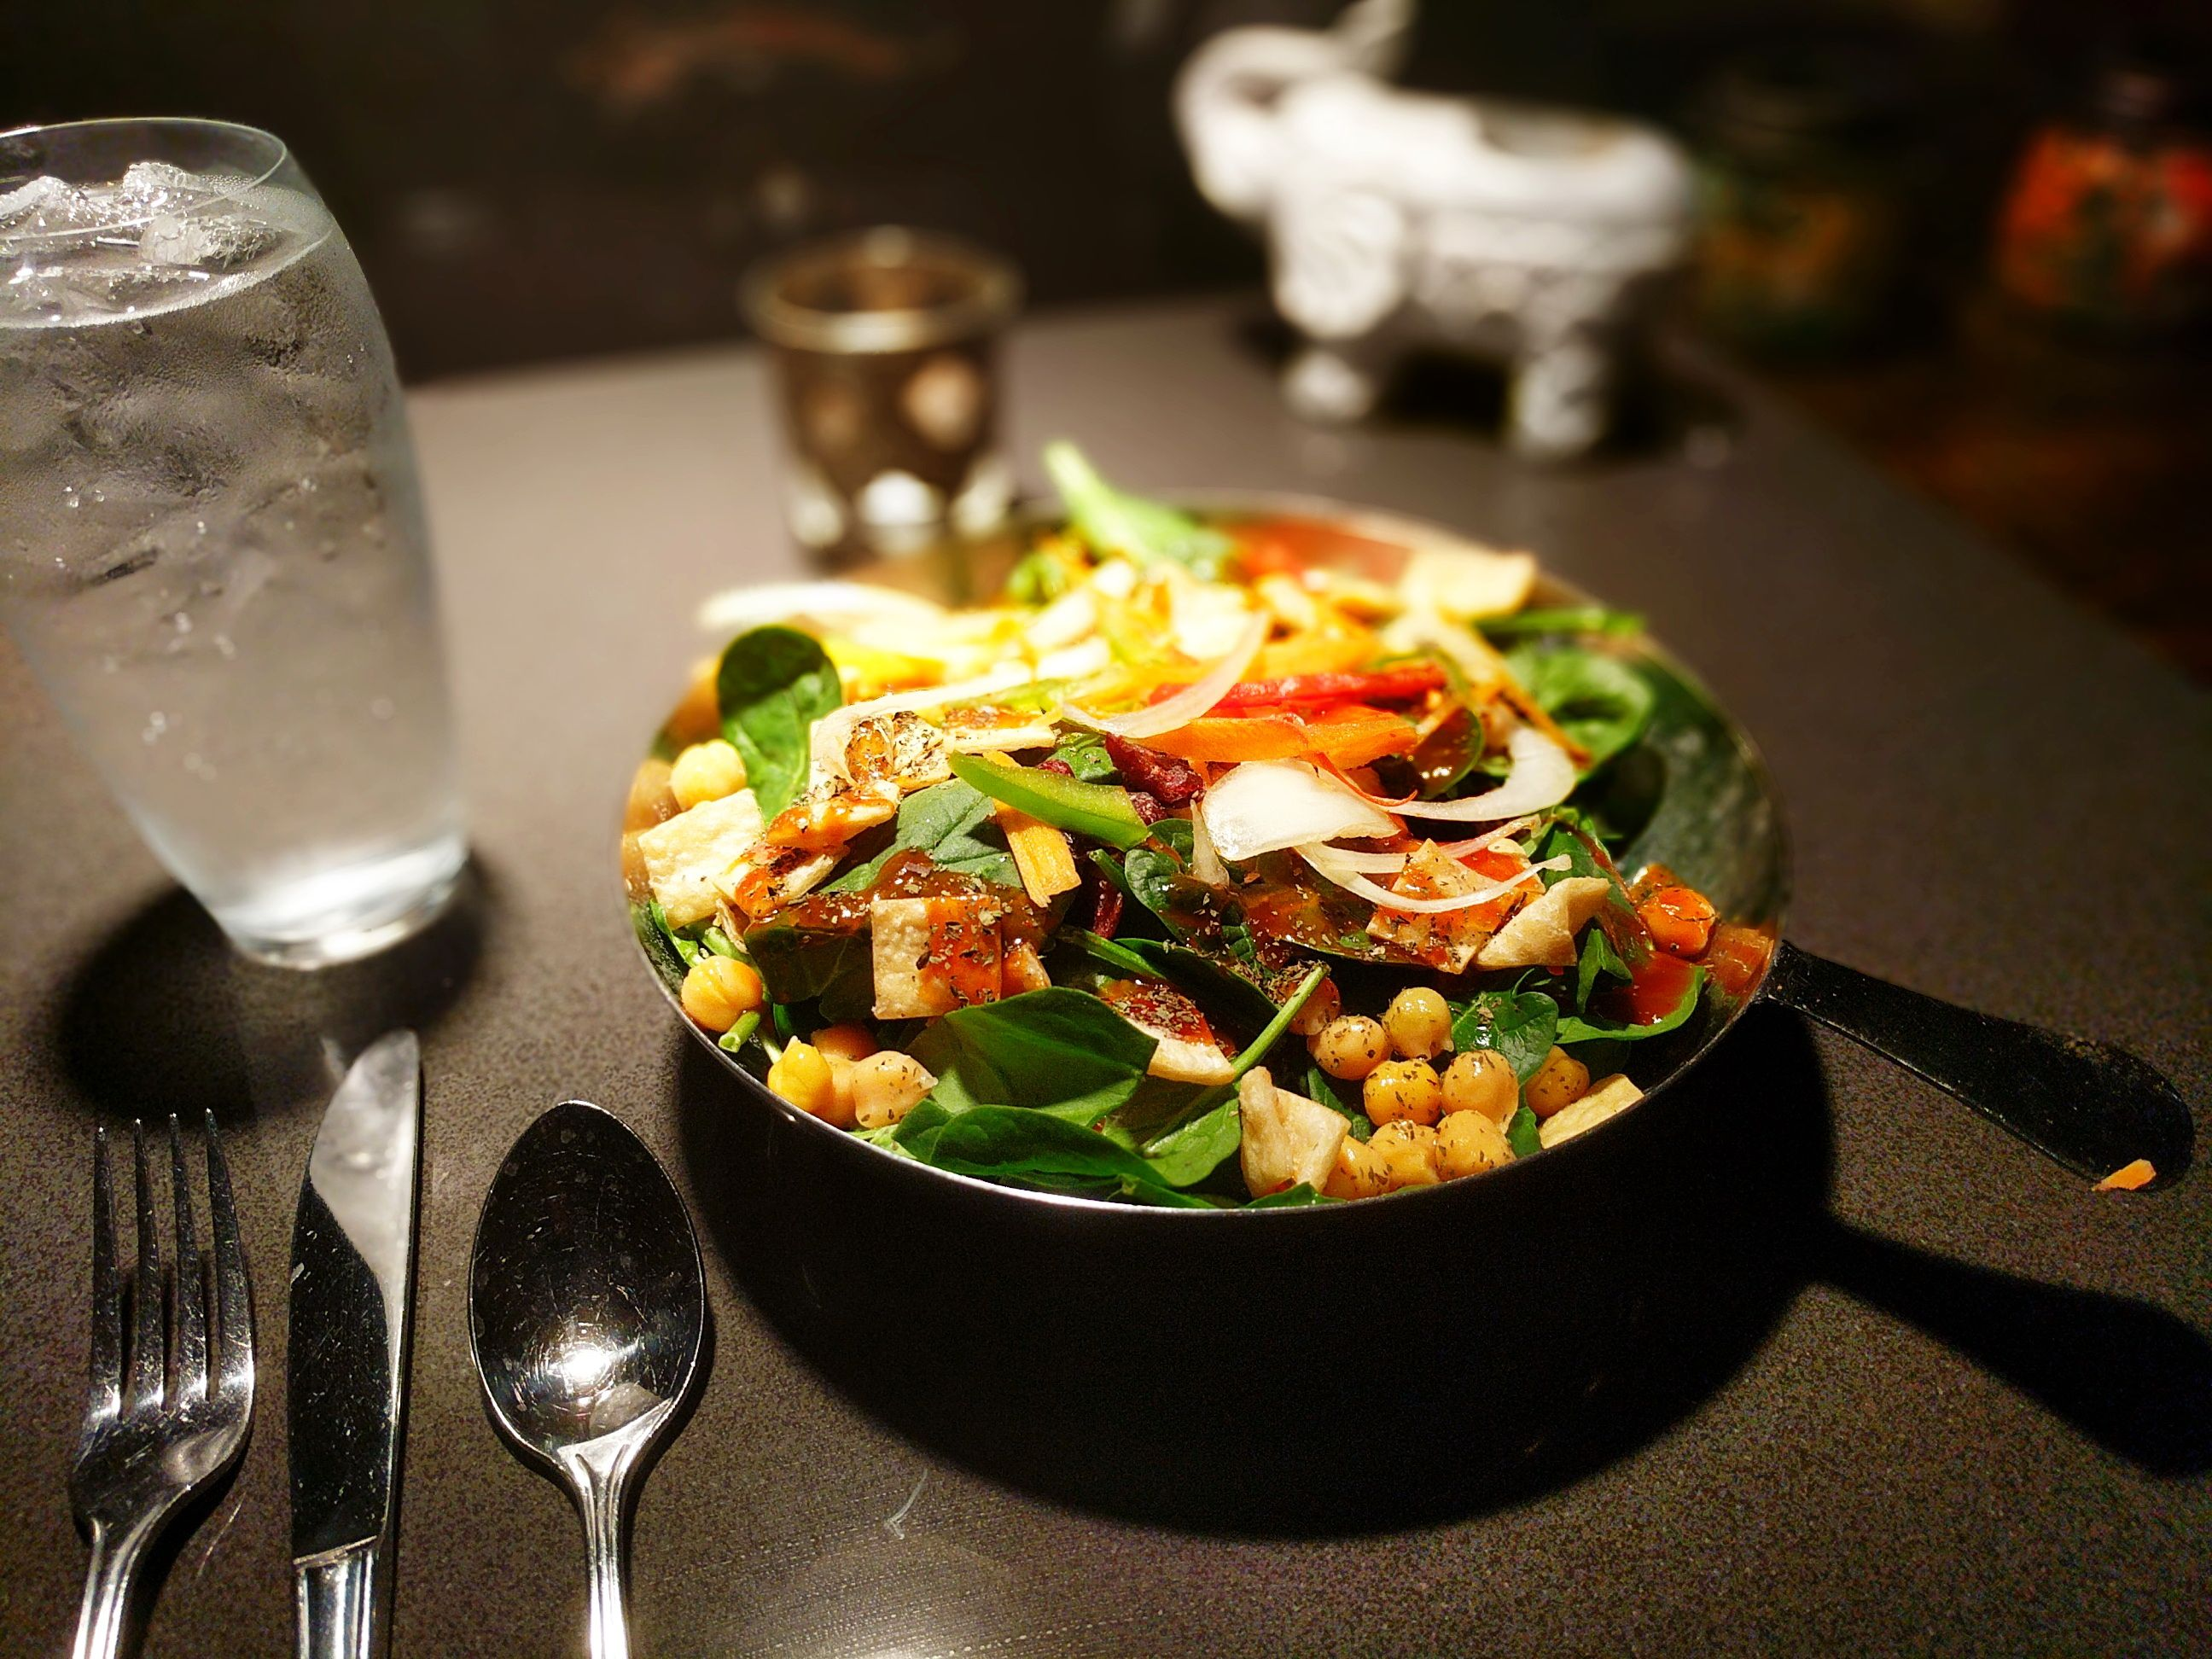 Health Benefits Of Eating Indian Food (With images